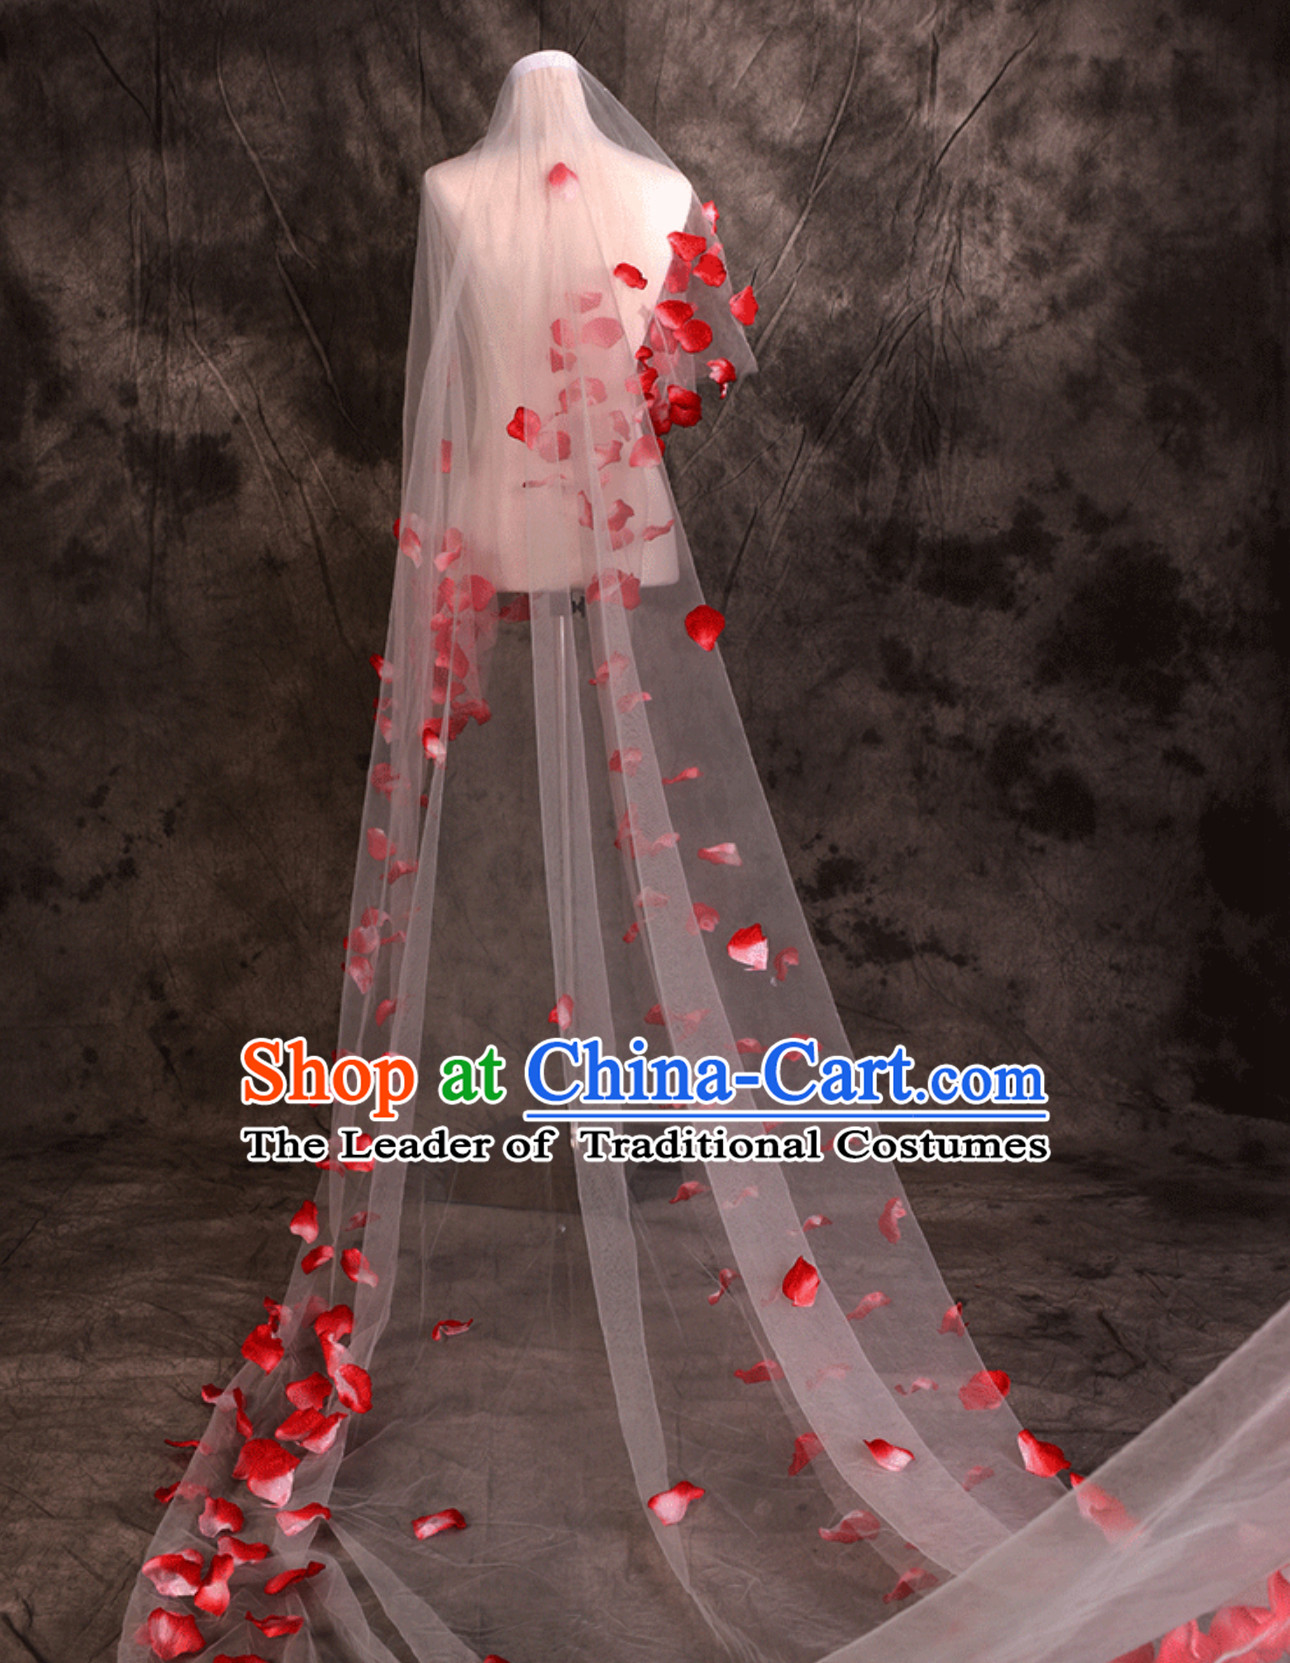 1.75 Meters Long Romantic Flower Petal Wedding Veil